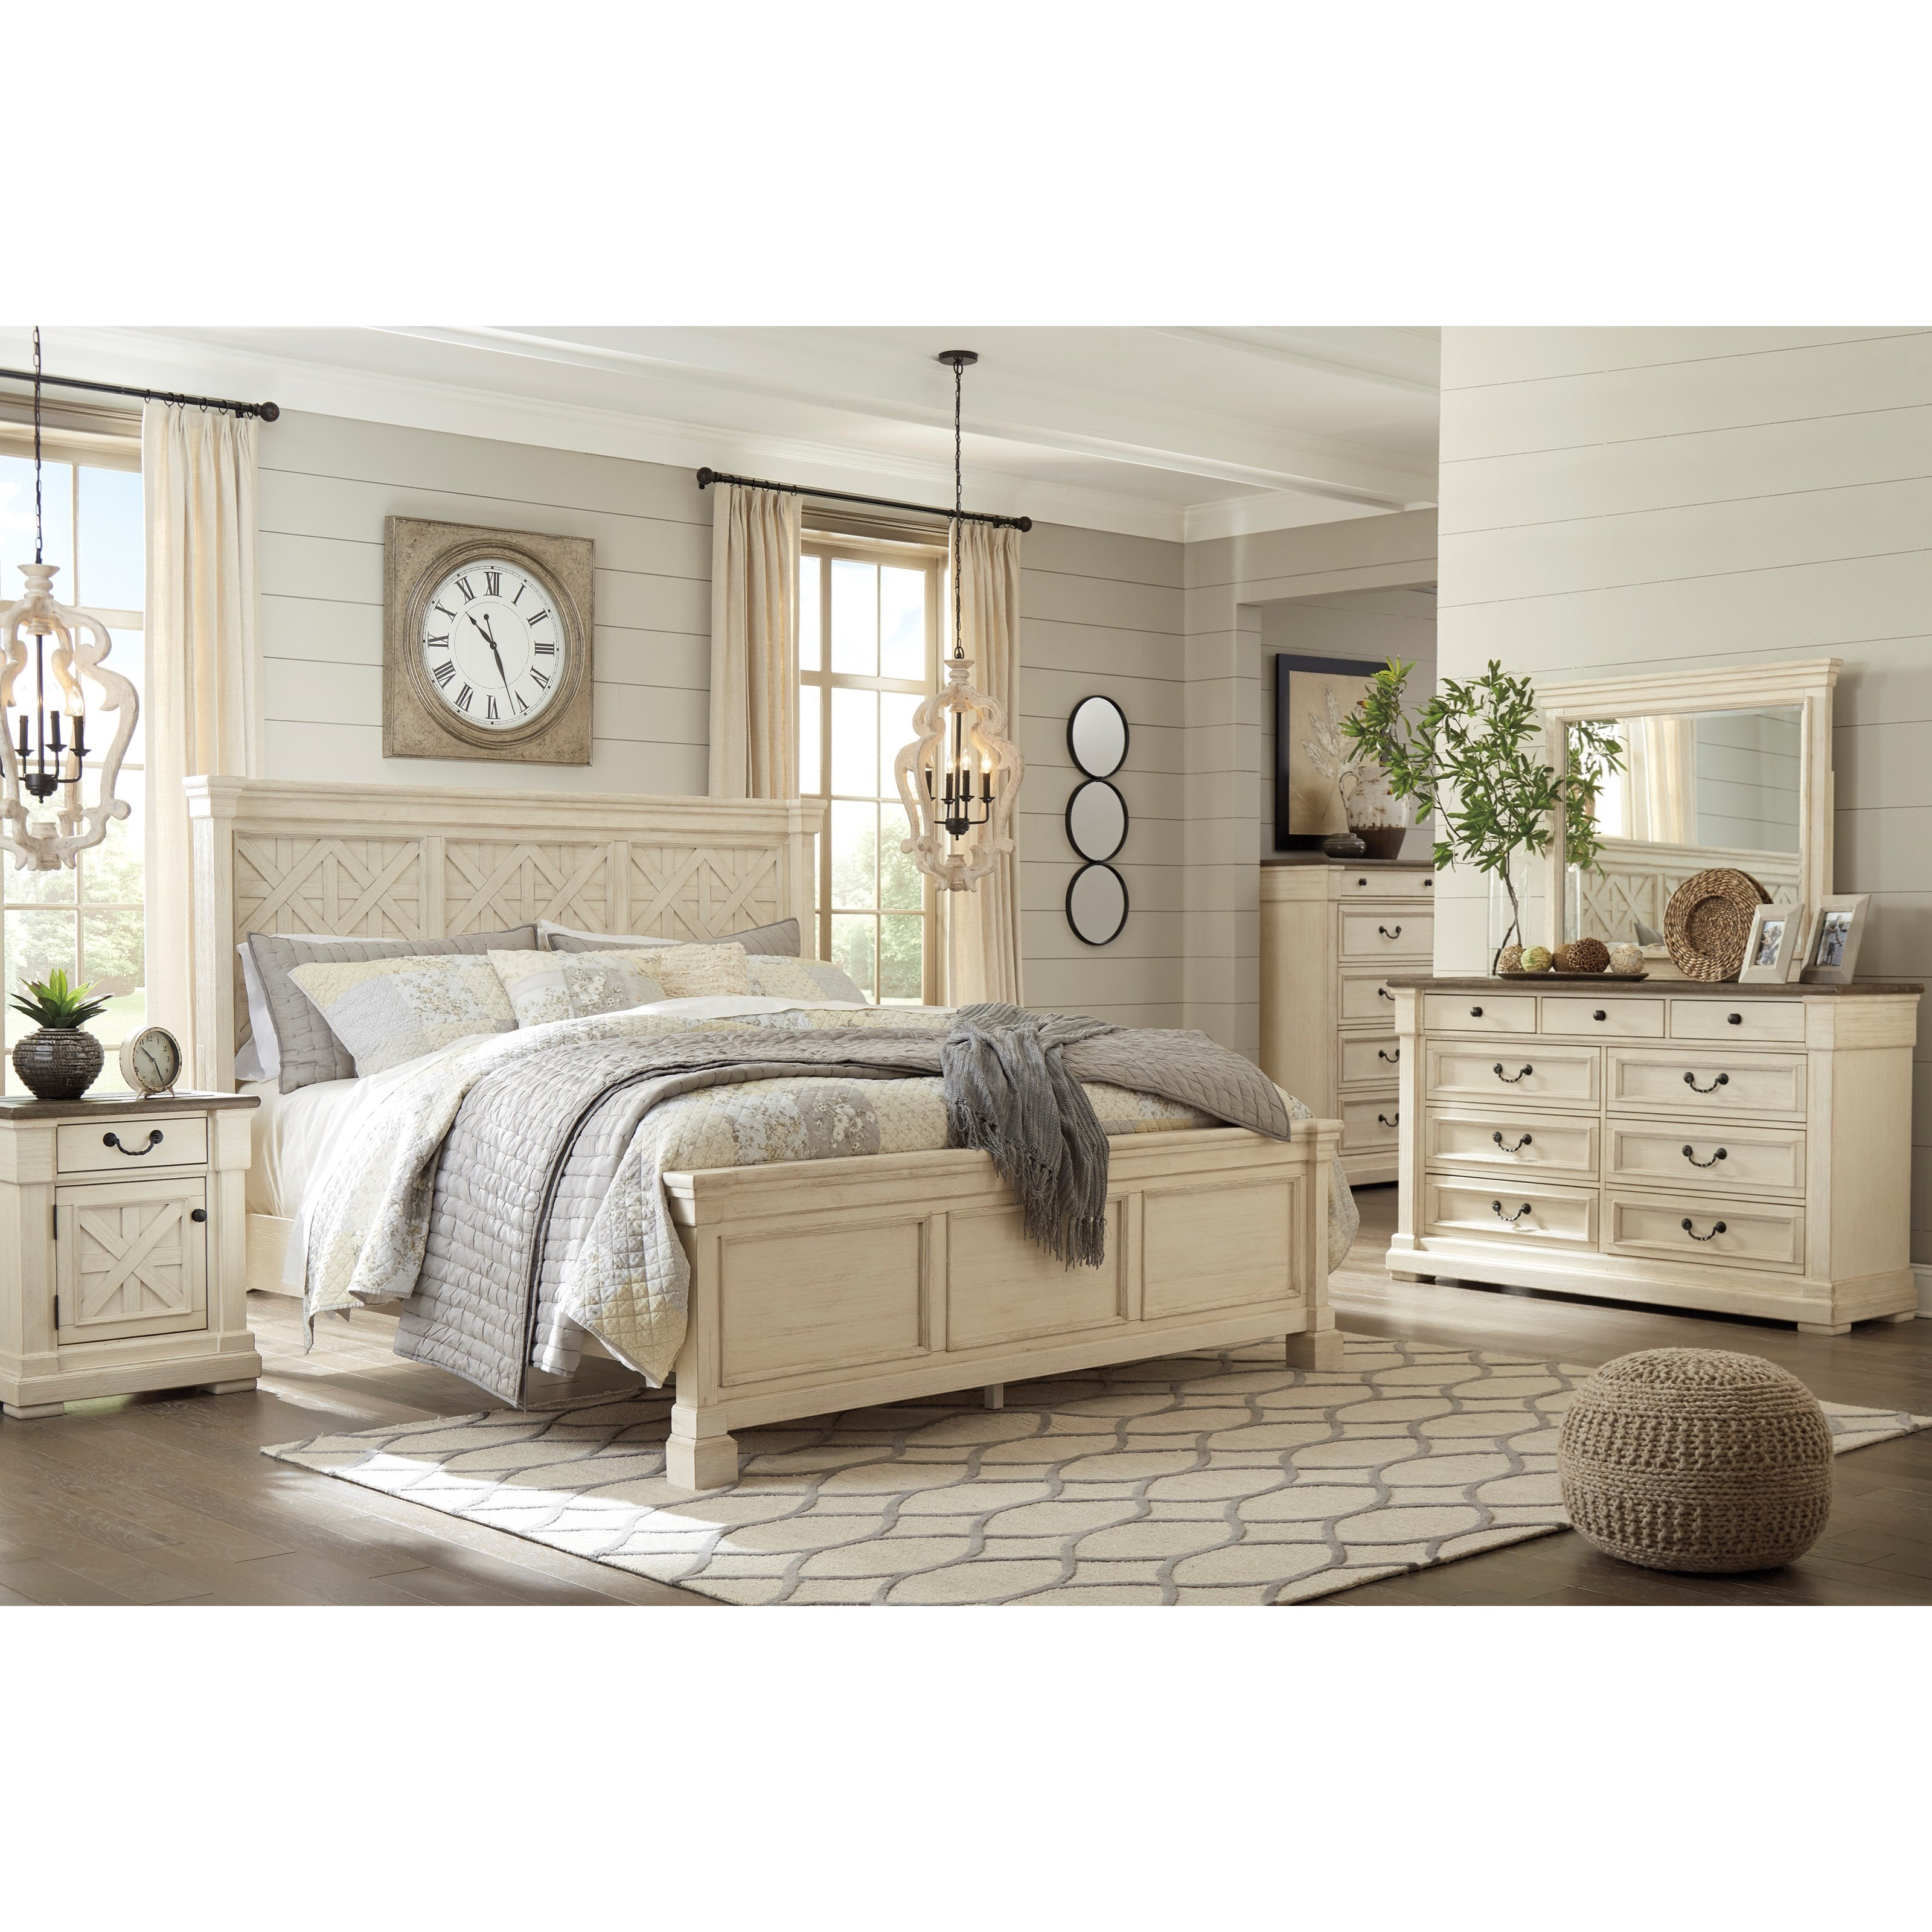 Ashley Furniture Black And White Bedroom Set Bedroom Yellow Paint Luxurious Bedrooms For Girls Colour Combination For Bedroom: Ashley Signature Design Bolanburg Two-Tone Dresser